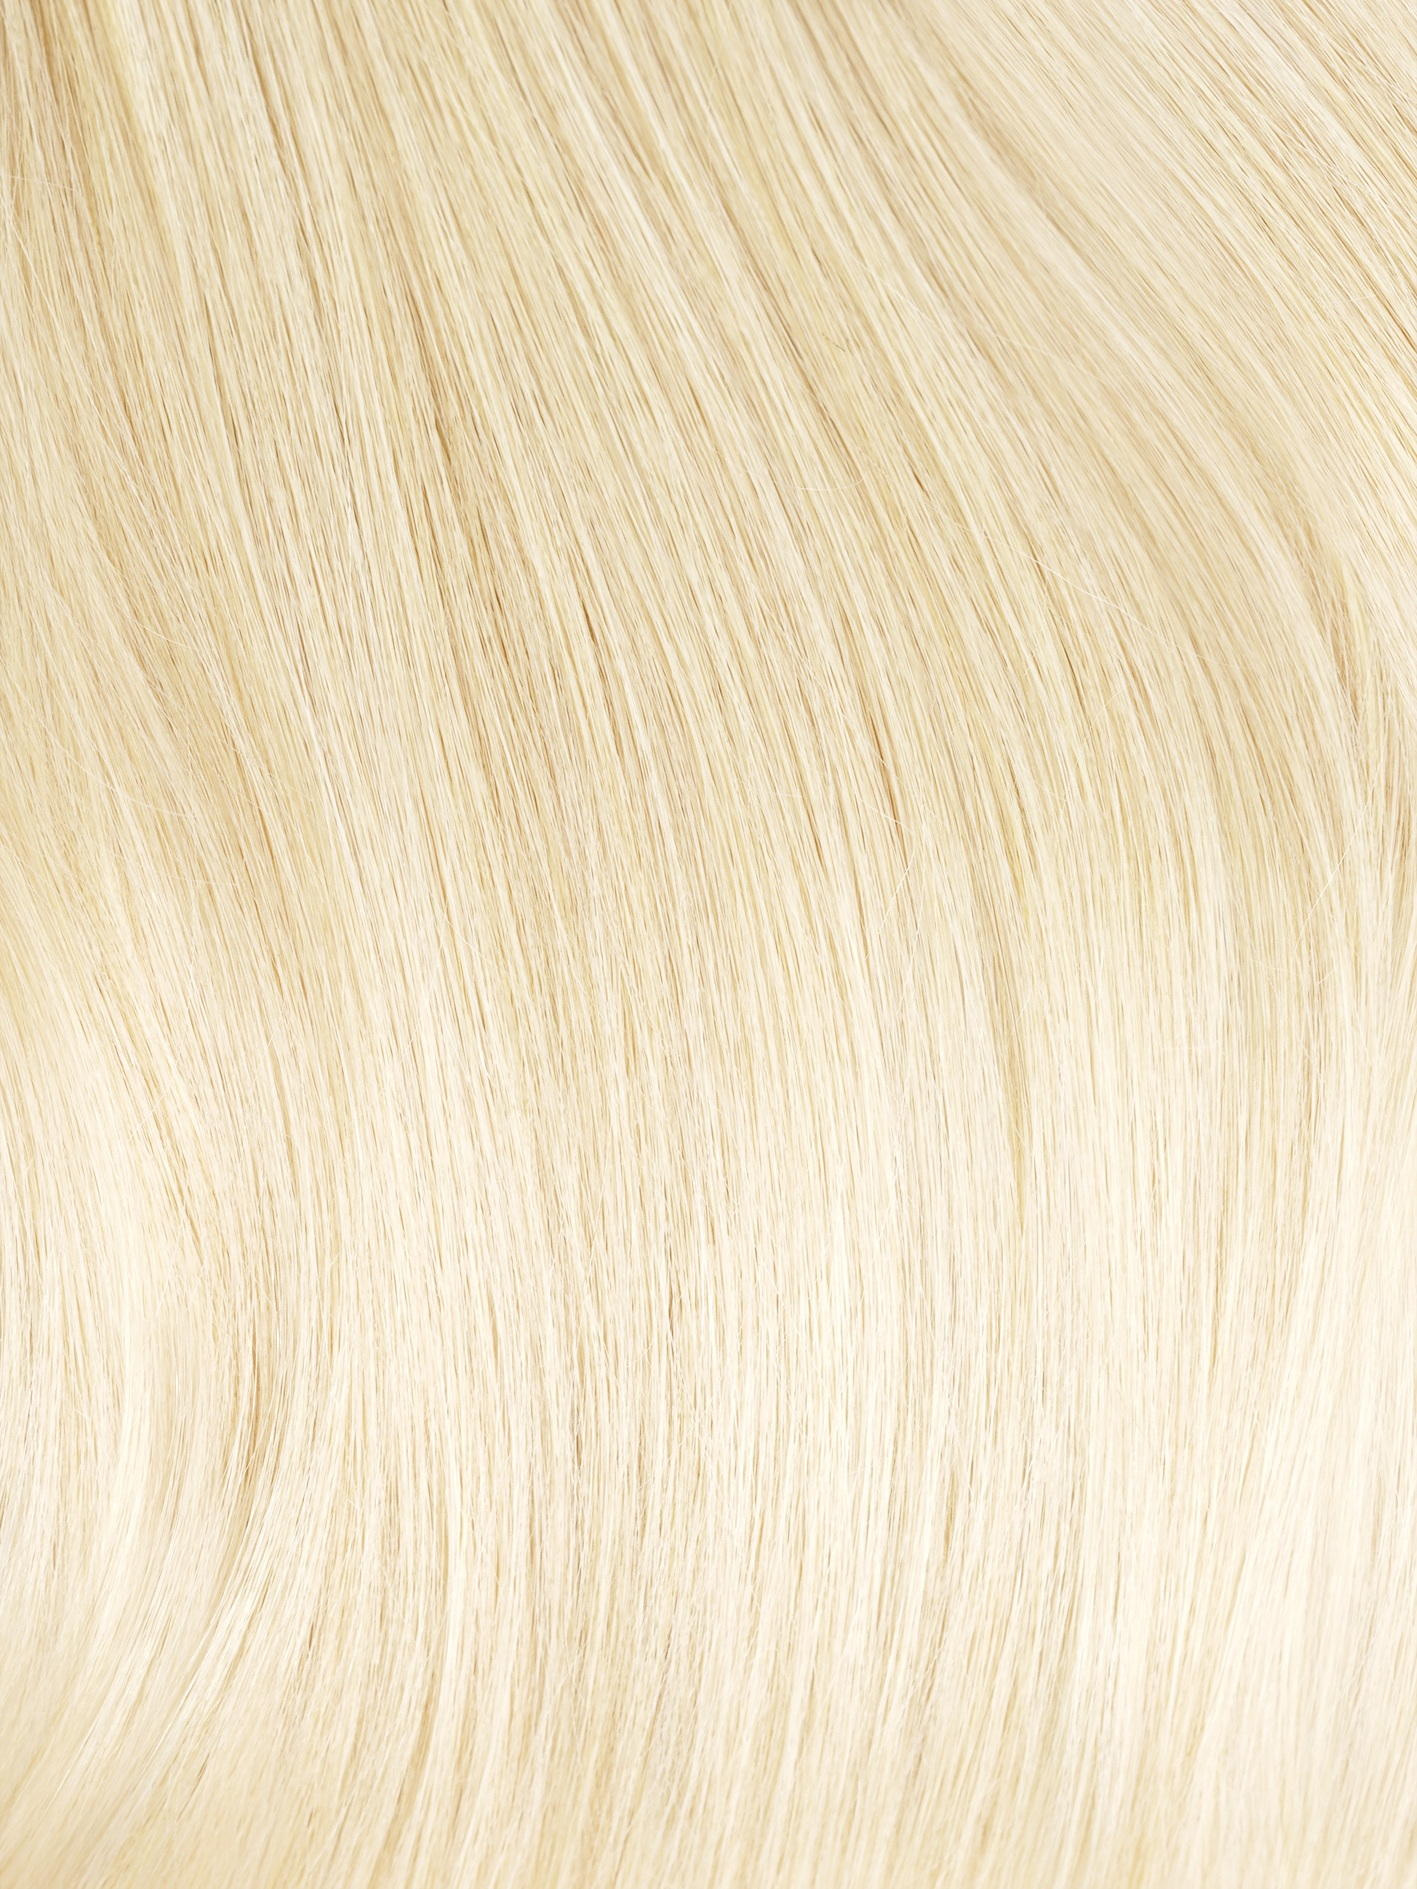 CHAMPAGNE #16 - Champagne is a glowing golden blonde with hints of neutral tones sure to brighten any look with its sparkly finish.